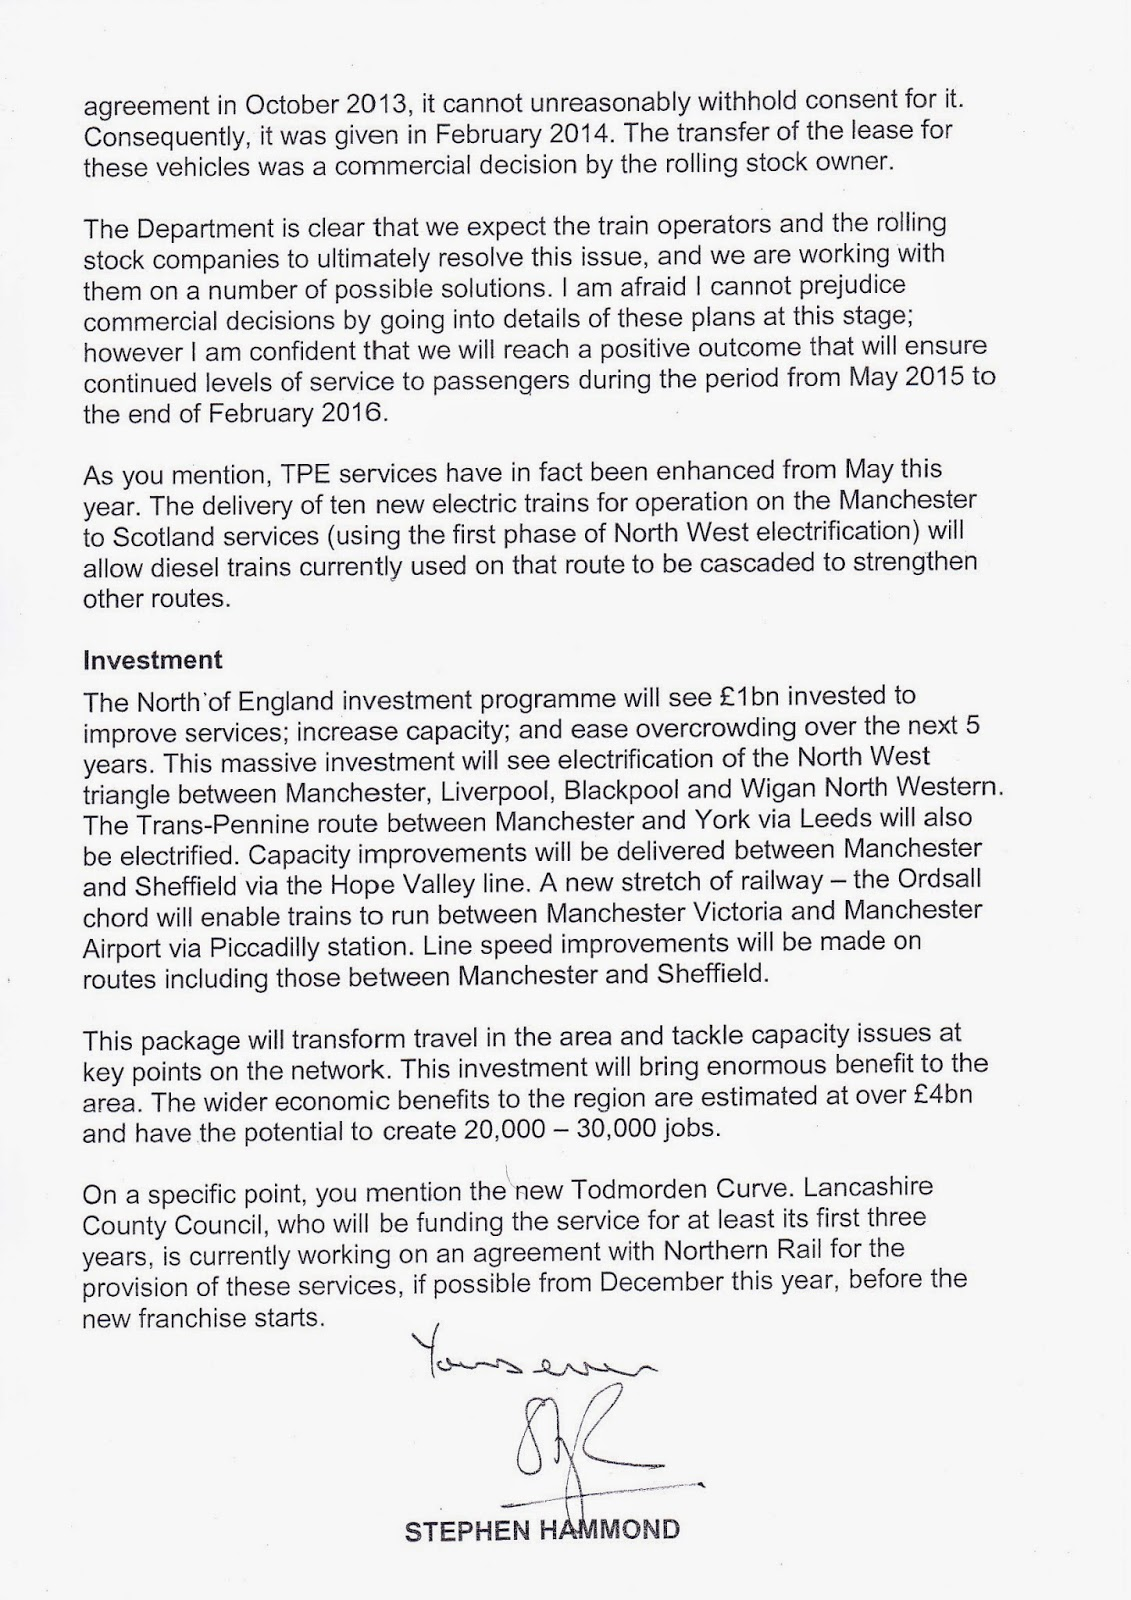 Graham jones 07012014 08012014 who as the letter says in the last parapgraph will be effectively be the franchisetoc with northern providing the service for the first three years thecheapjerseys Images